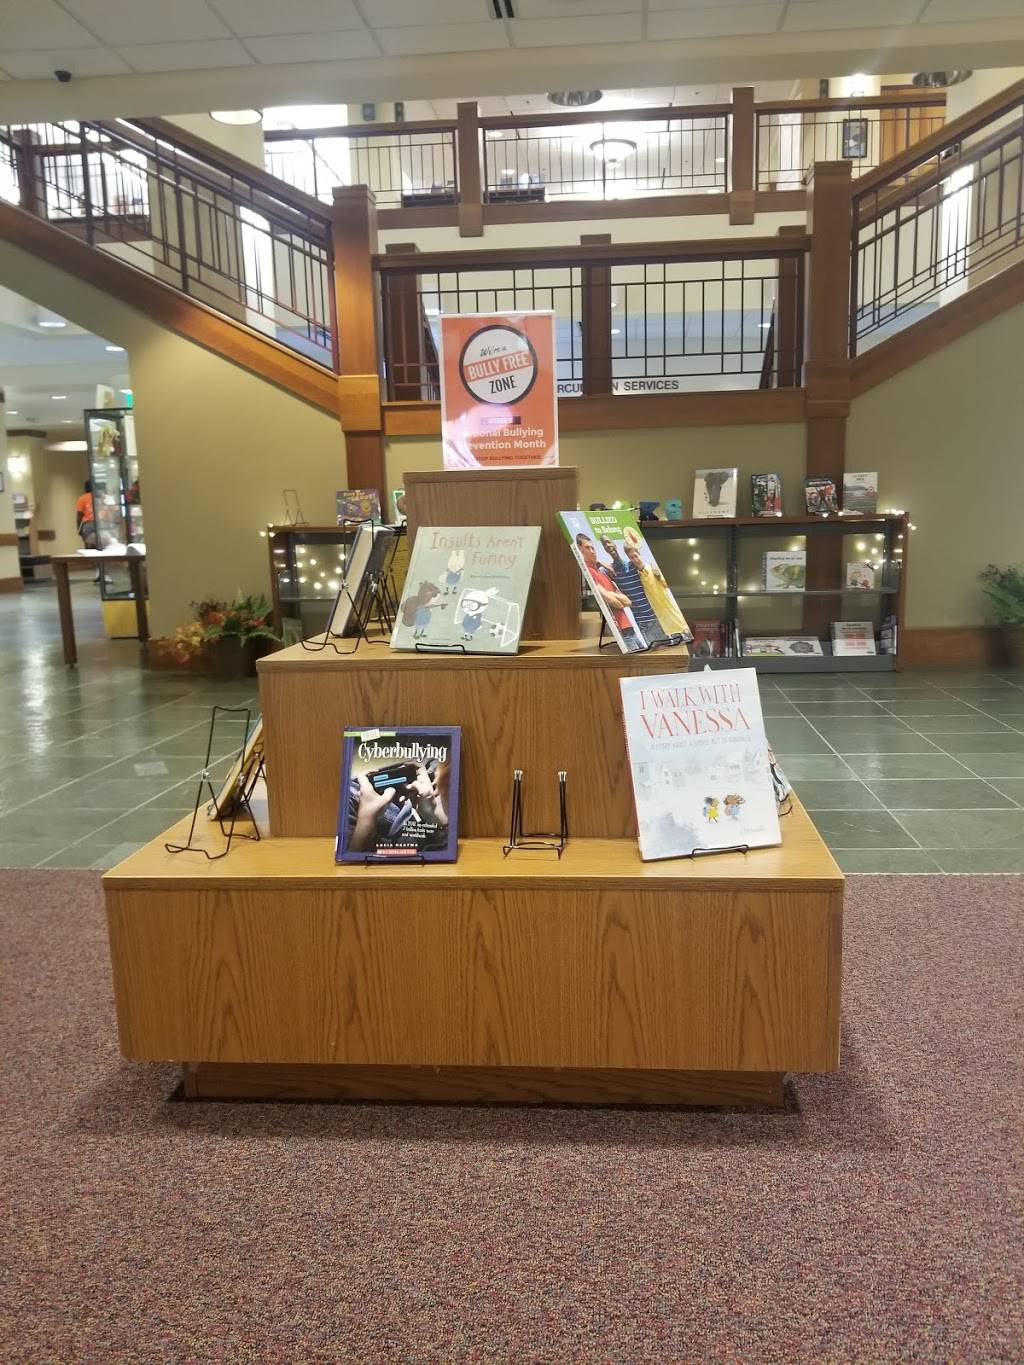 Hammond Public Library - library  | Photo 3 of 8 | Address: 564 State St, Hammond, IN 46320, USA | Phone: (219) 931-5100